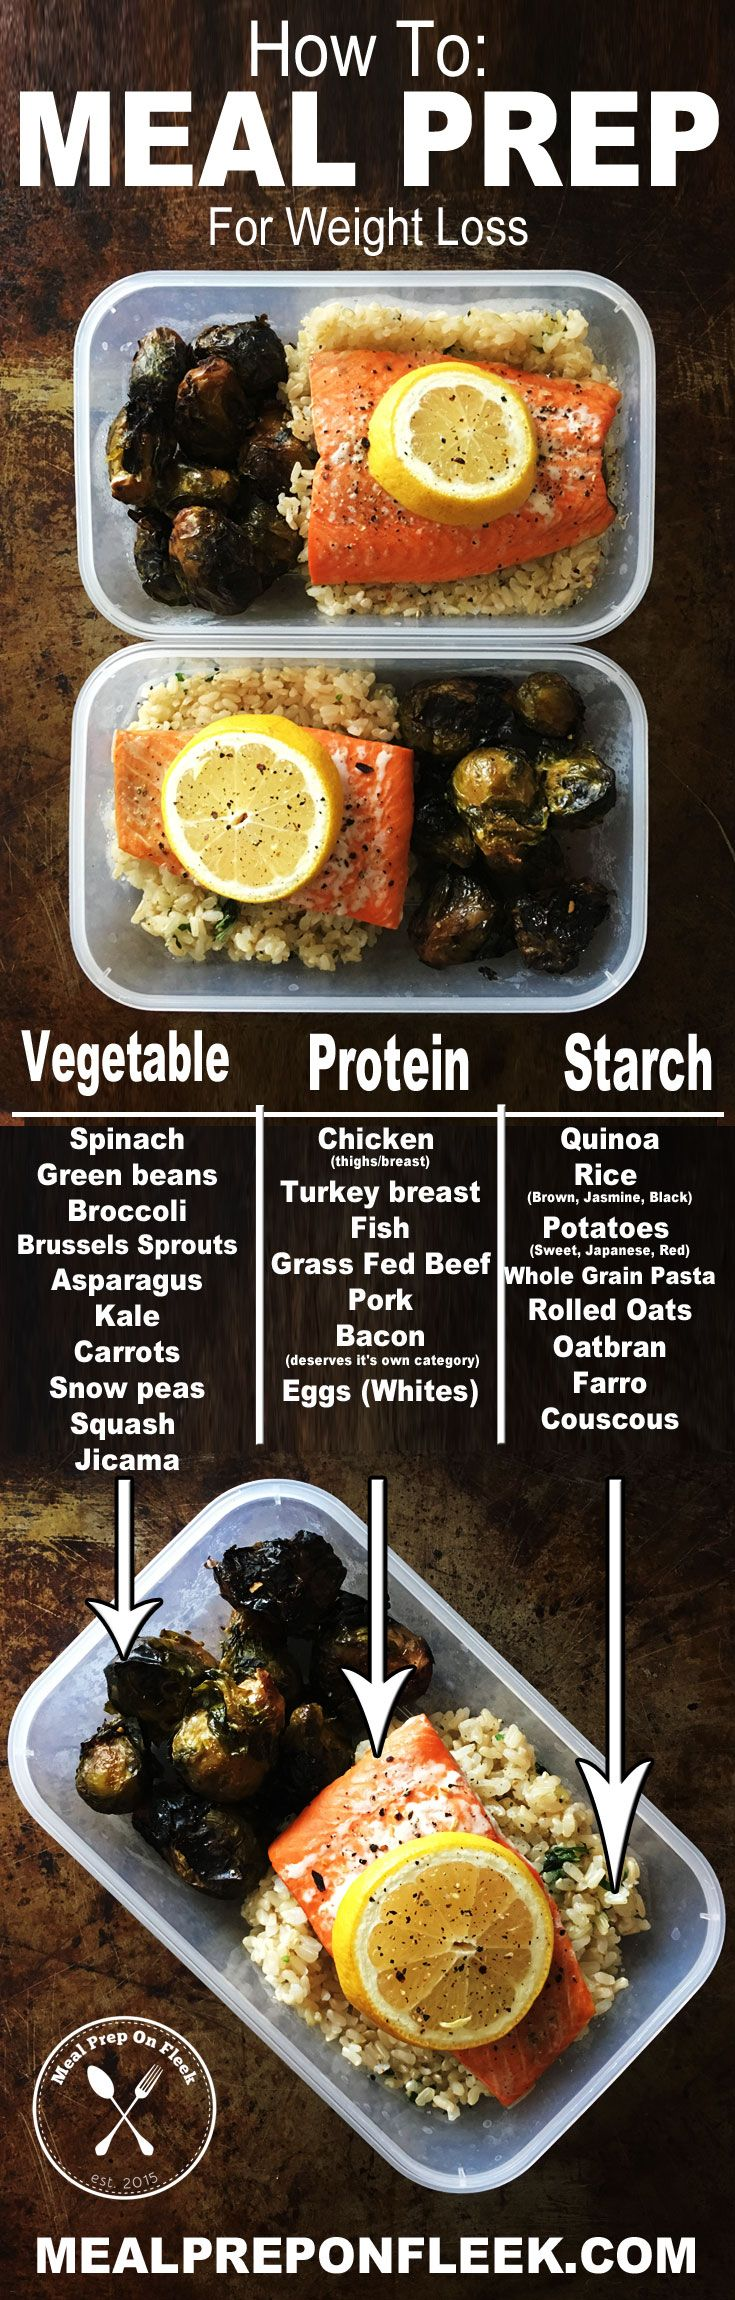 Meal Prep 101 For Beginners #healthyeating